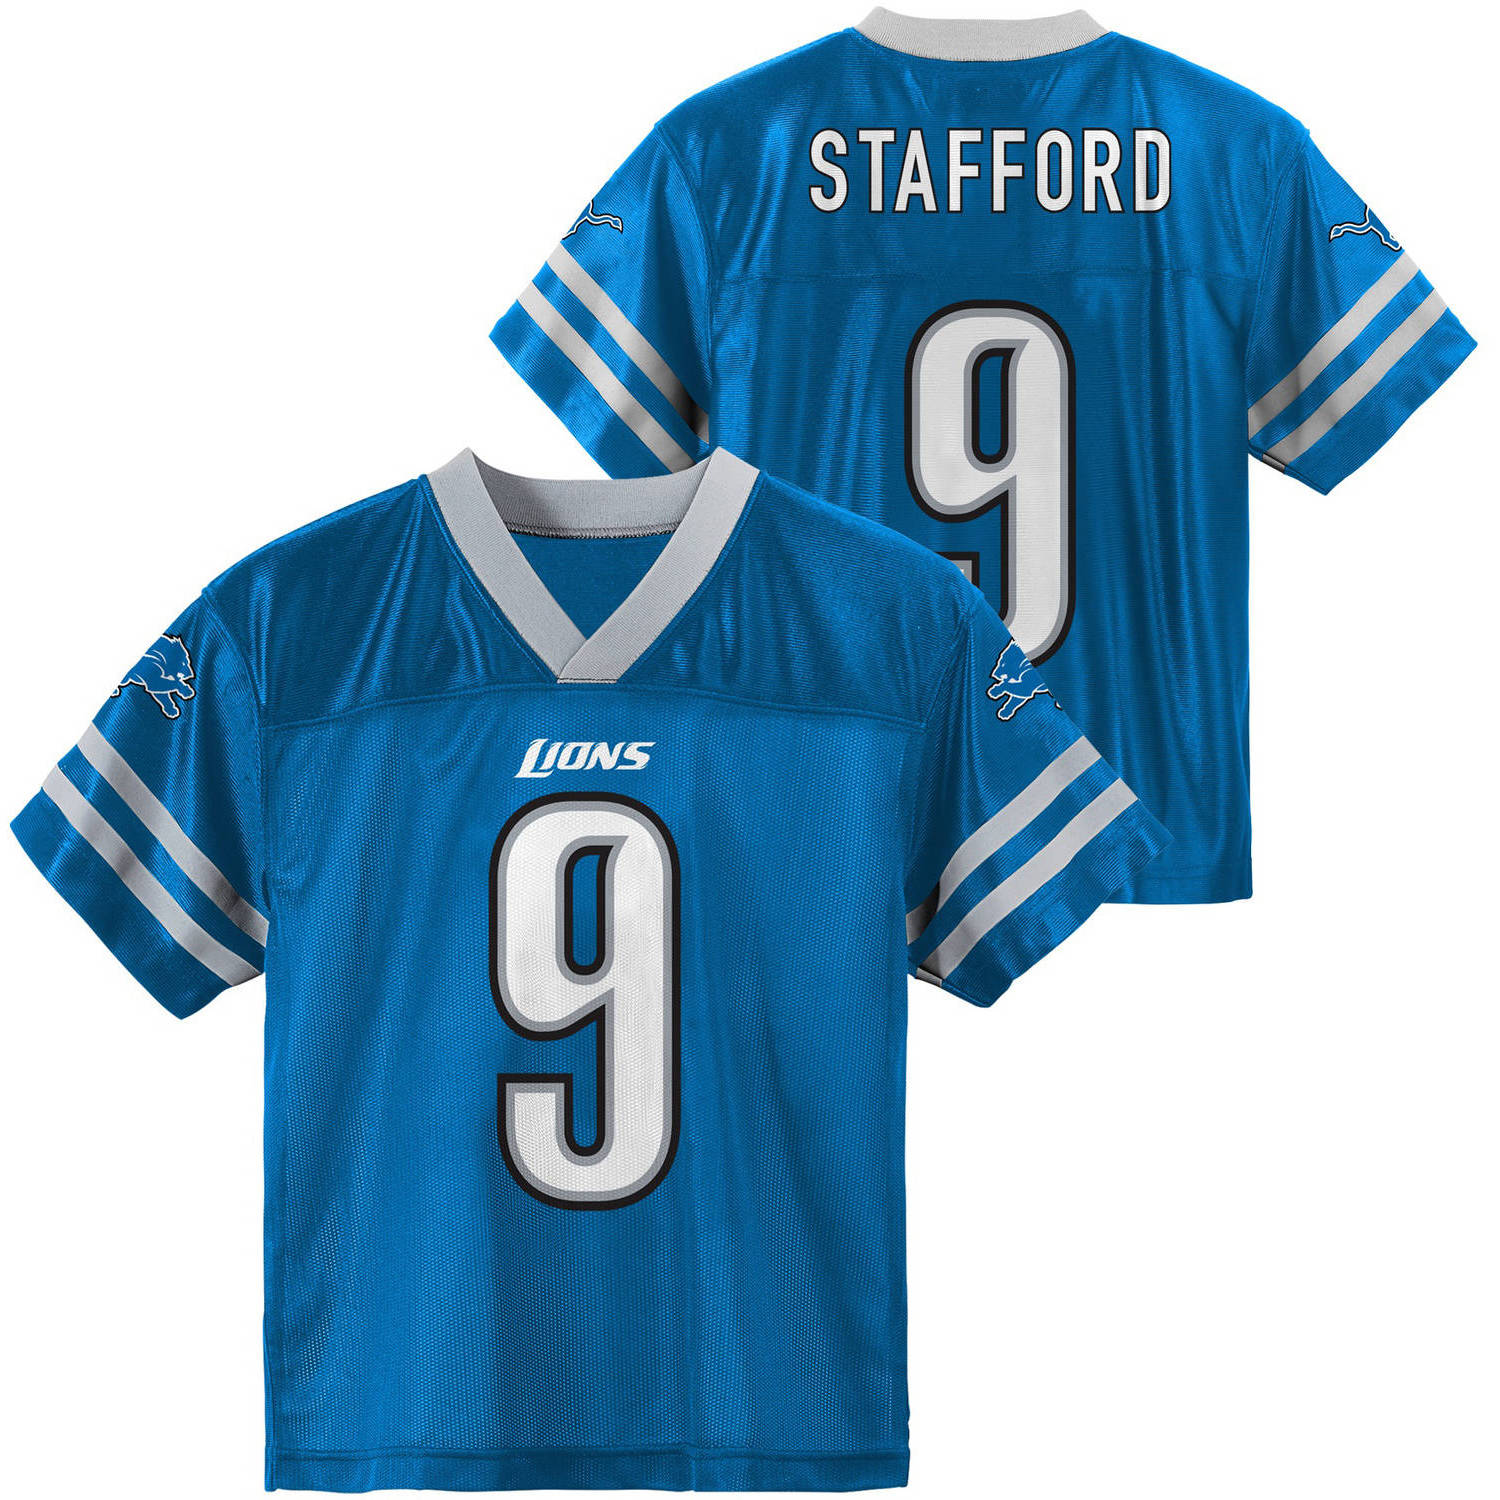 brand new 08b91 87834 closeout matthew stafford detroit lions jersey be402 4f809